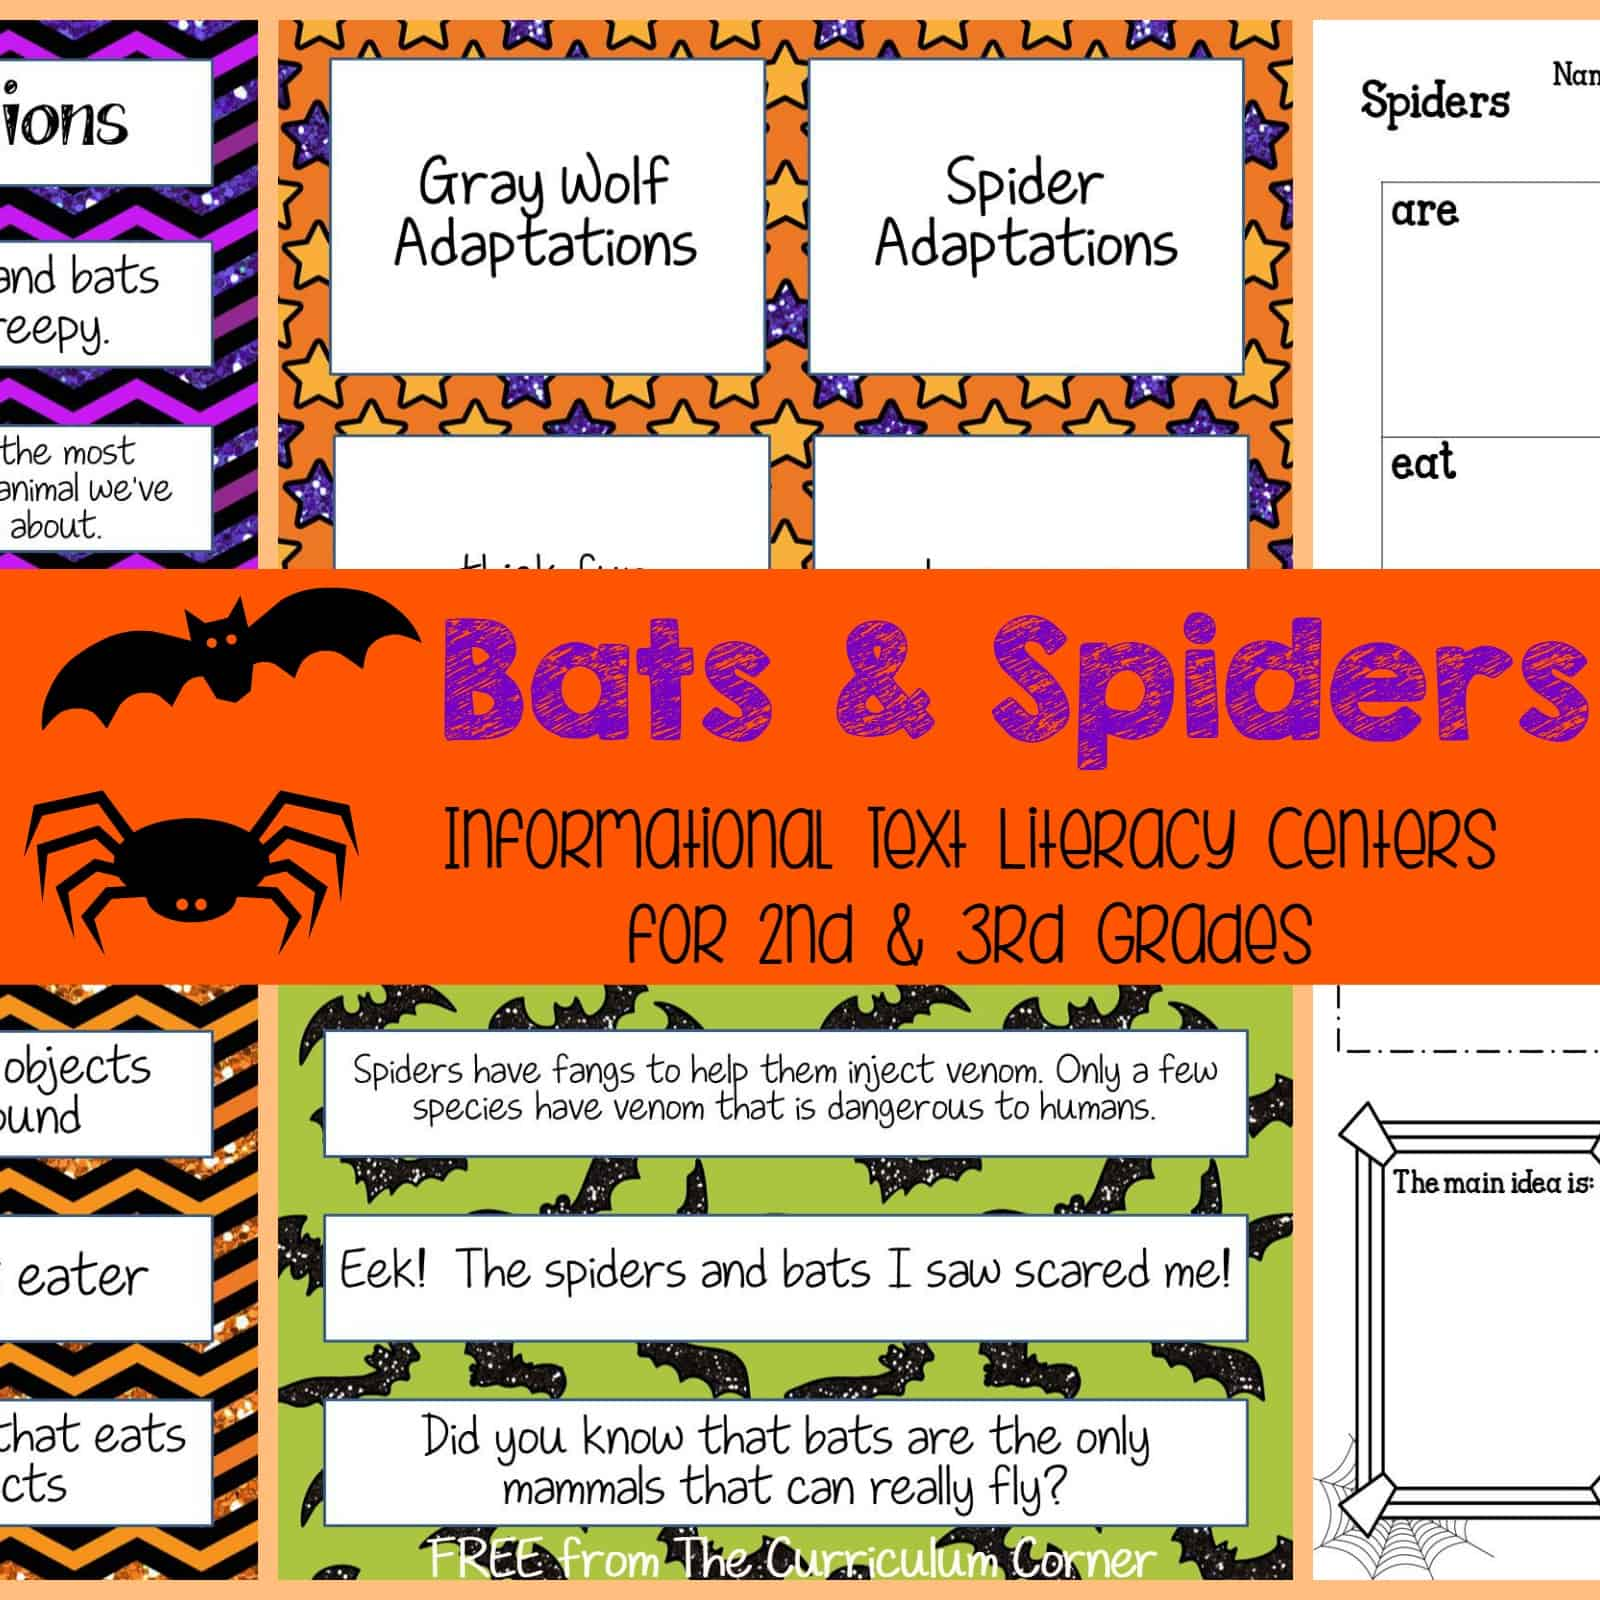 Bats & Spiders (Literacy Centers)